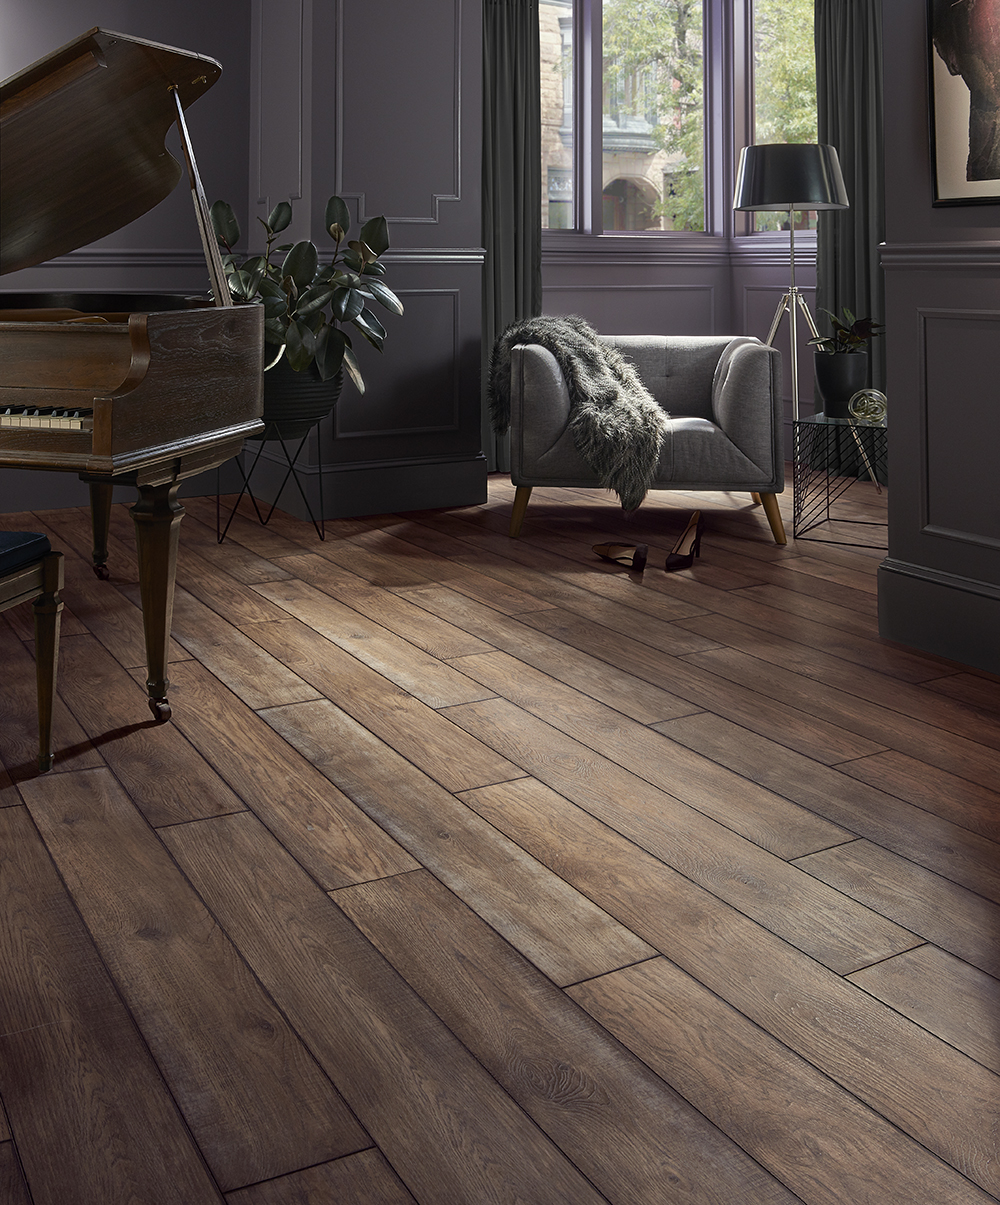 Fake Wood Luxury Vinyl Plank Flooring